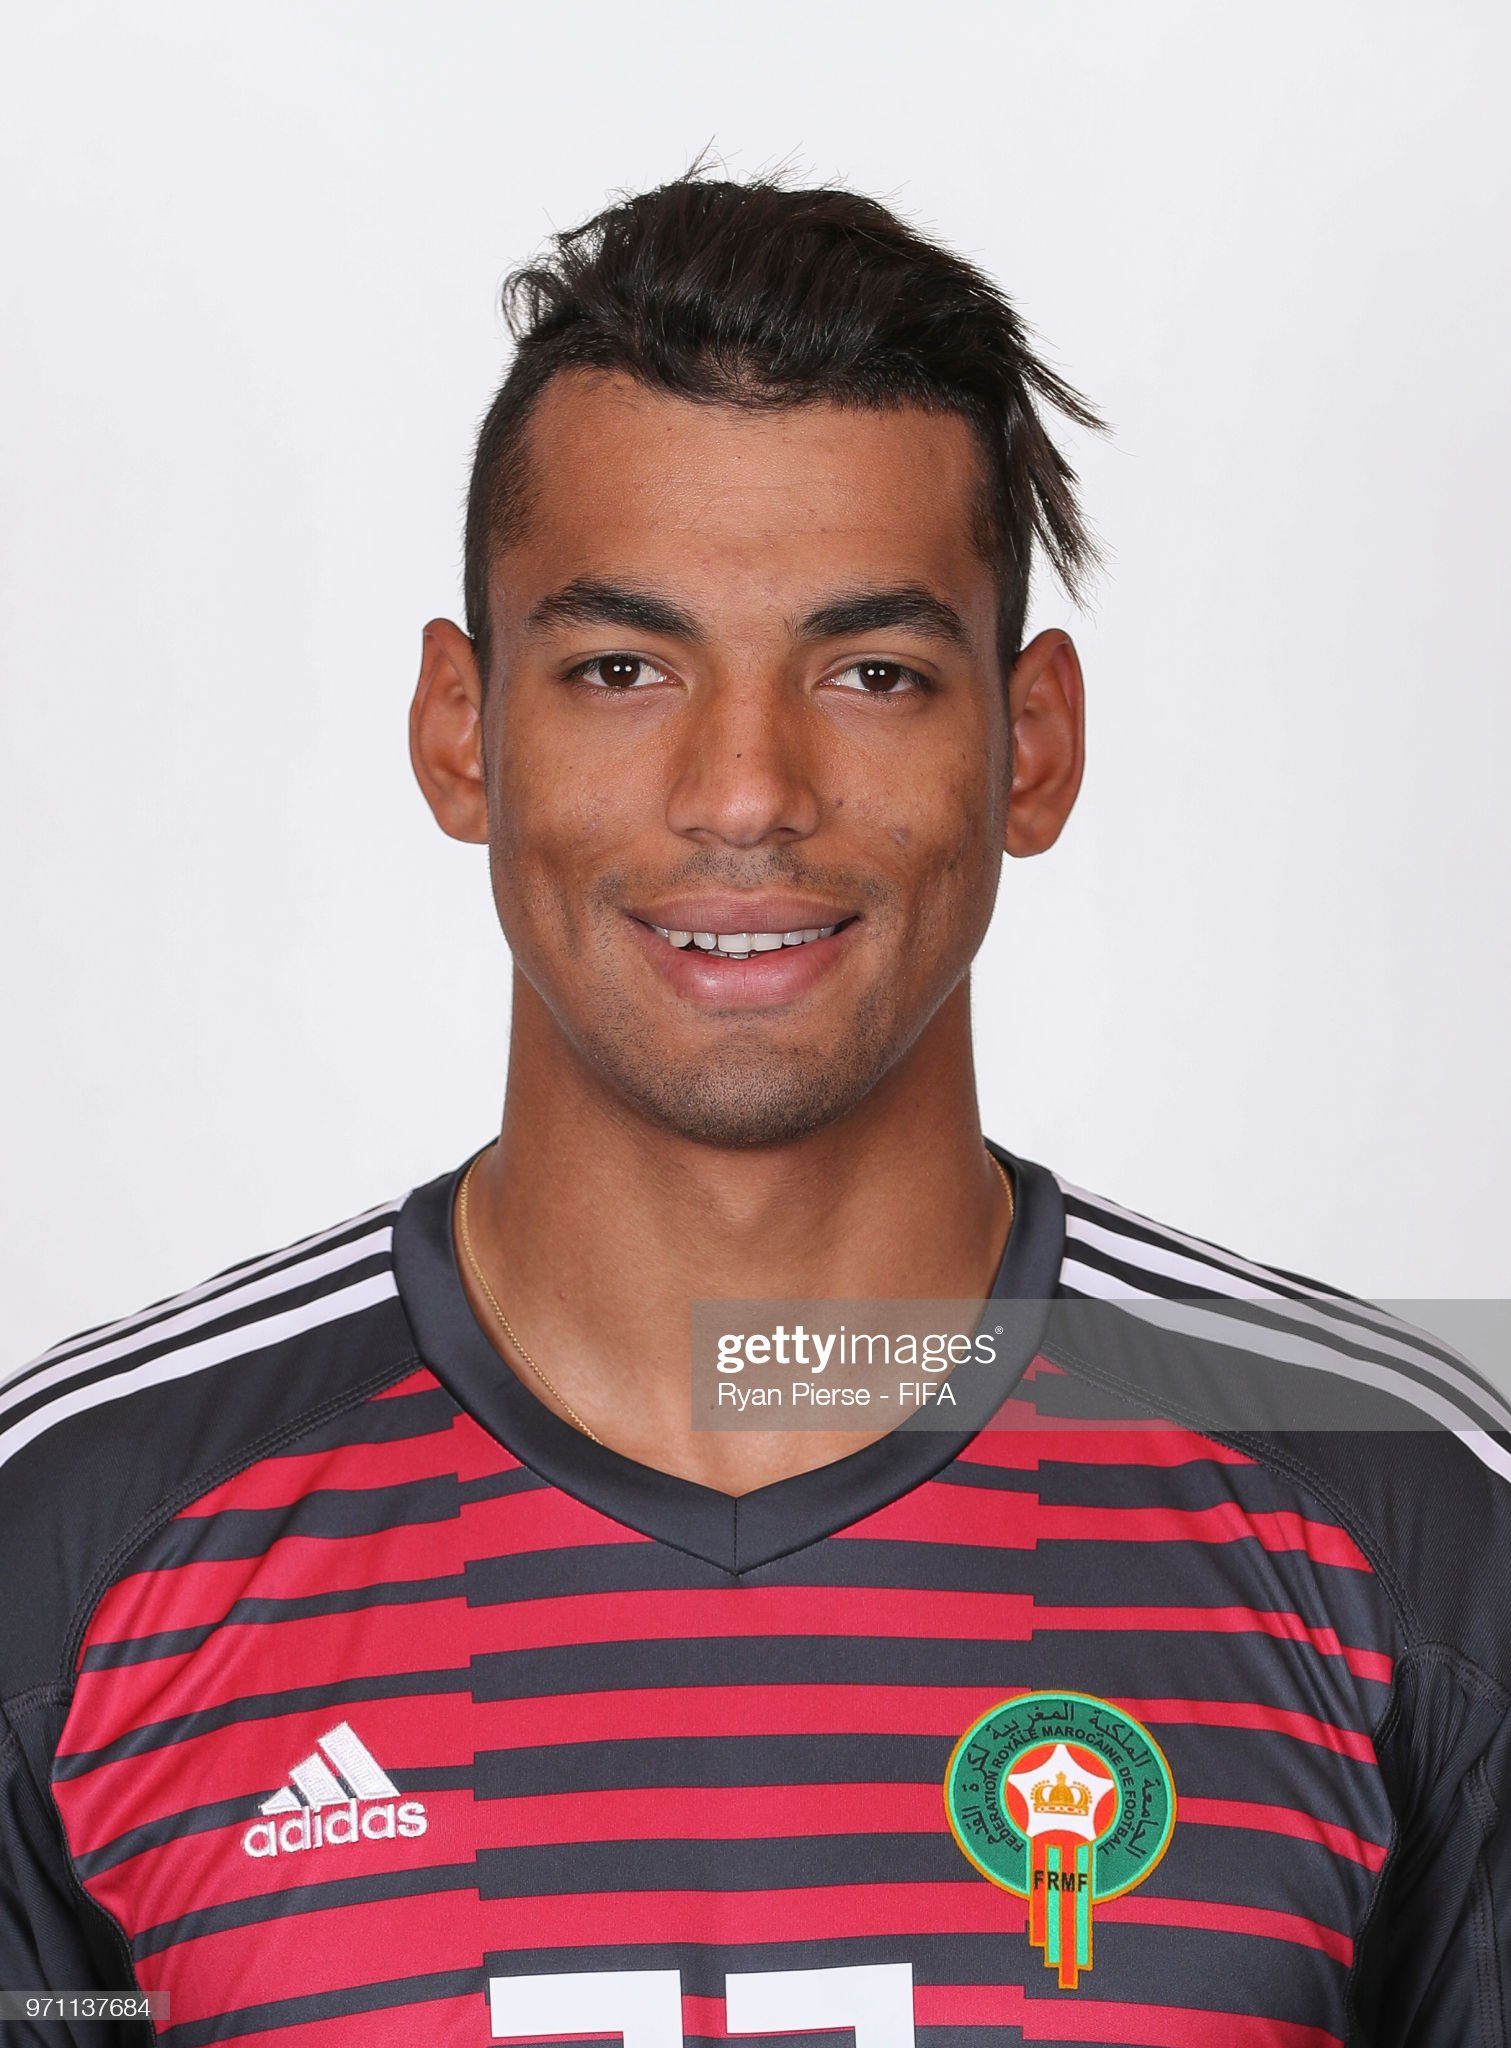 Norteafricanos Ahmed-reda-tagnaouti-of-morocco-poses-during-the-official-fifa-world-picture-id971137684?s=2048x2048